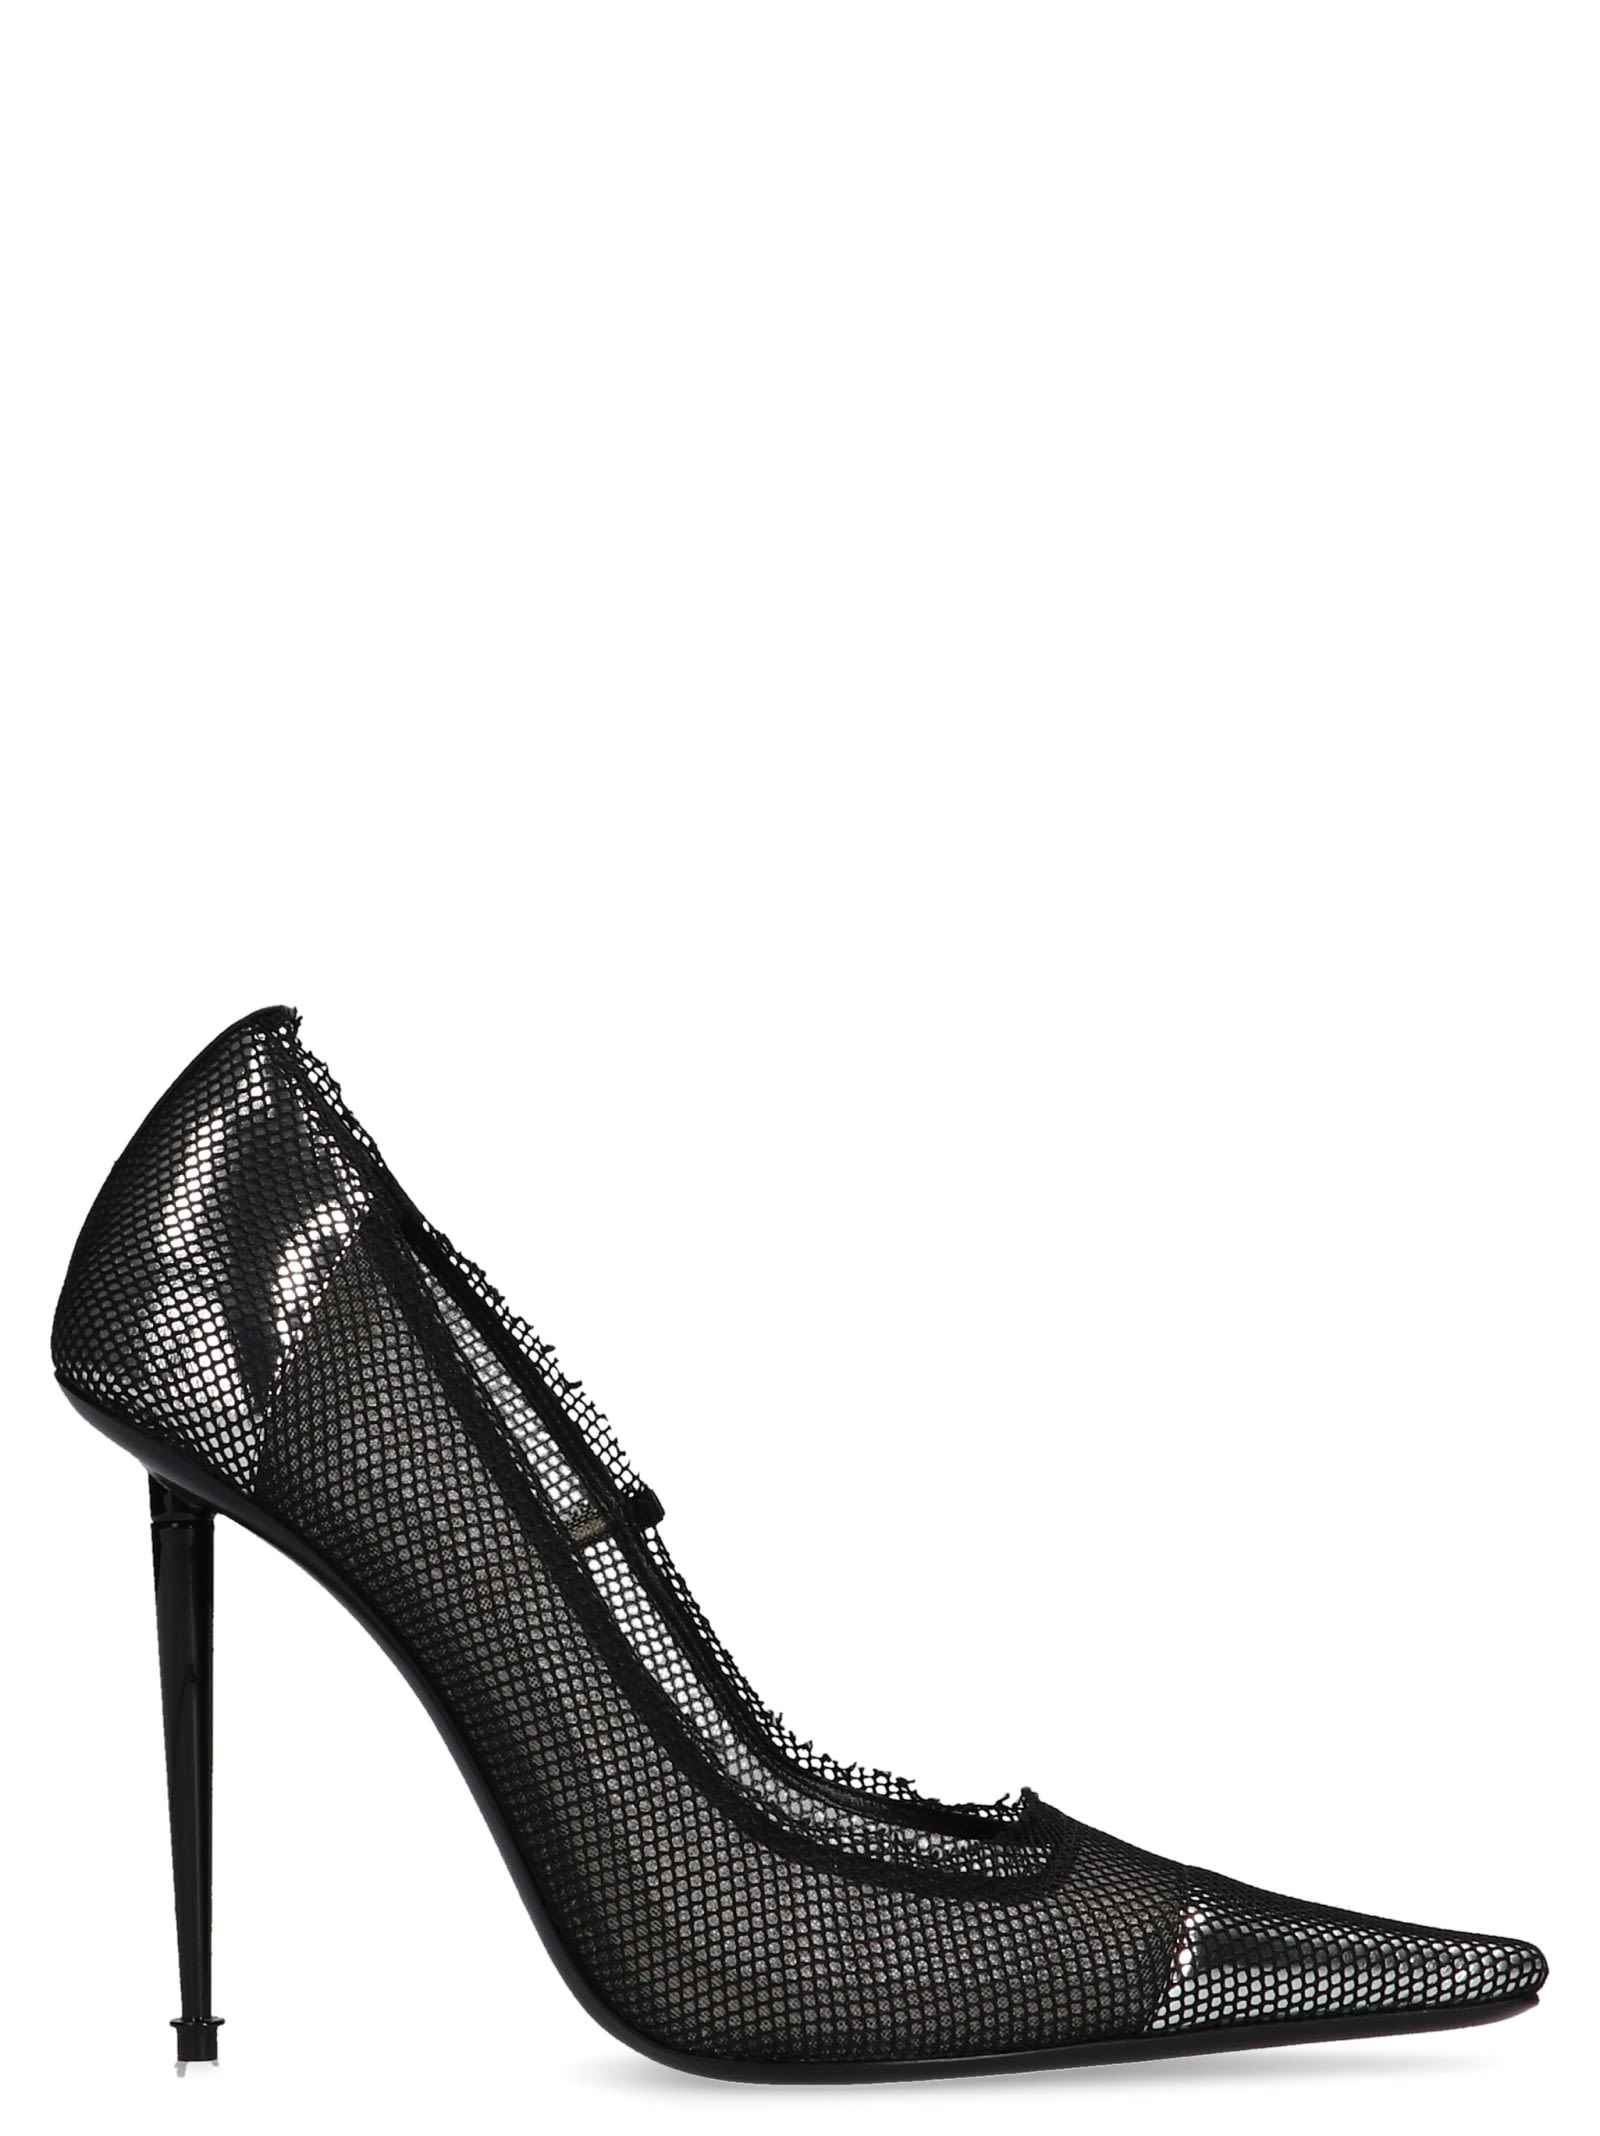 Tom Ford Net Shoes In Black